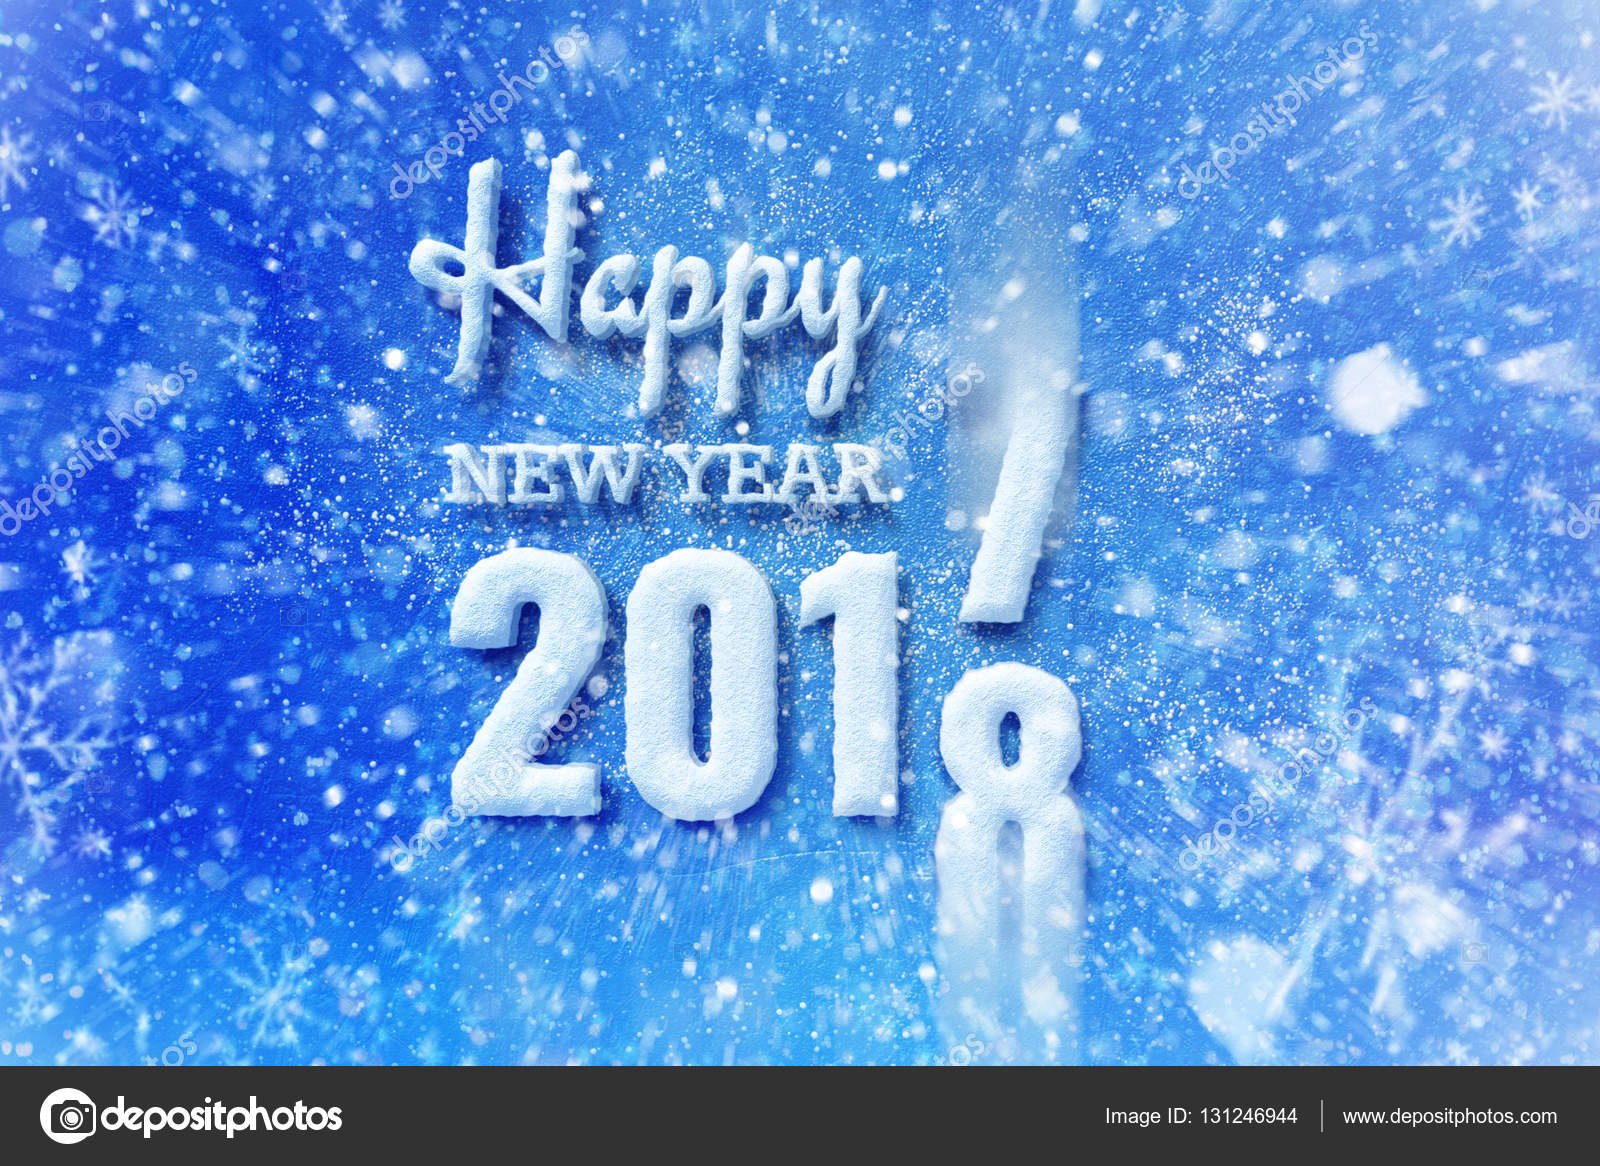 New Year 2018 Text With Snow Effect